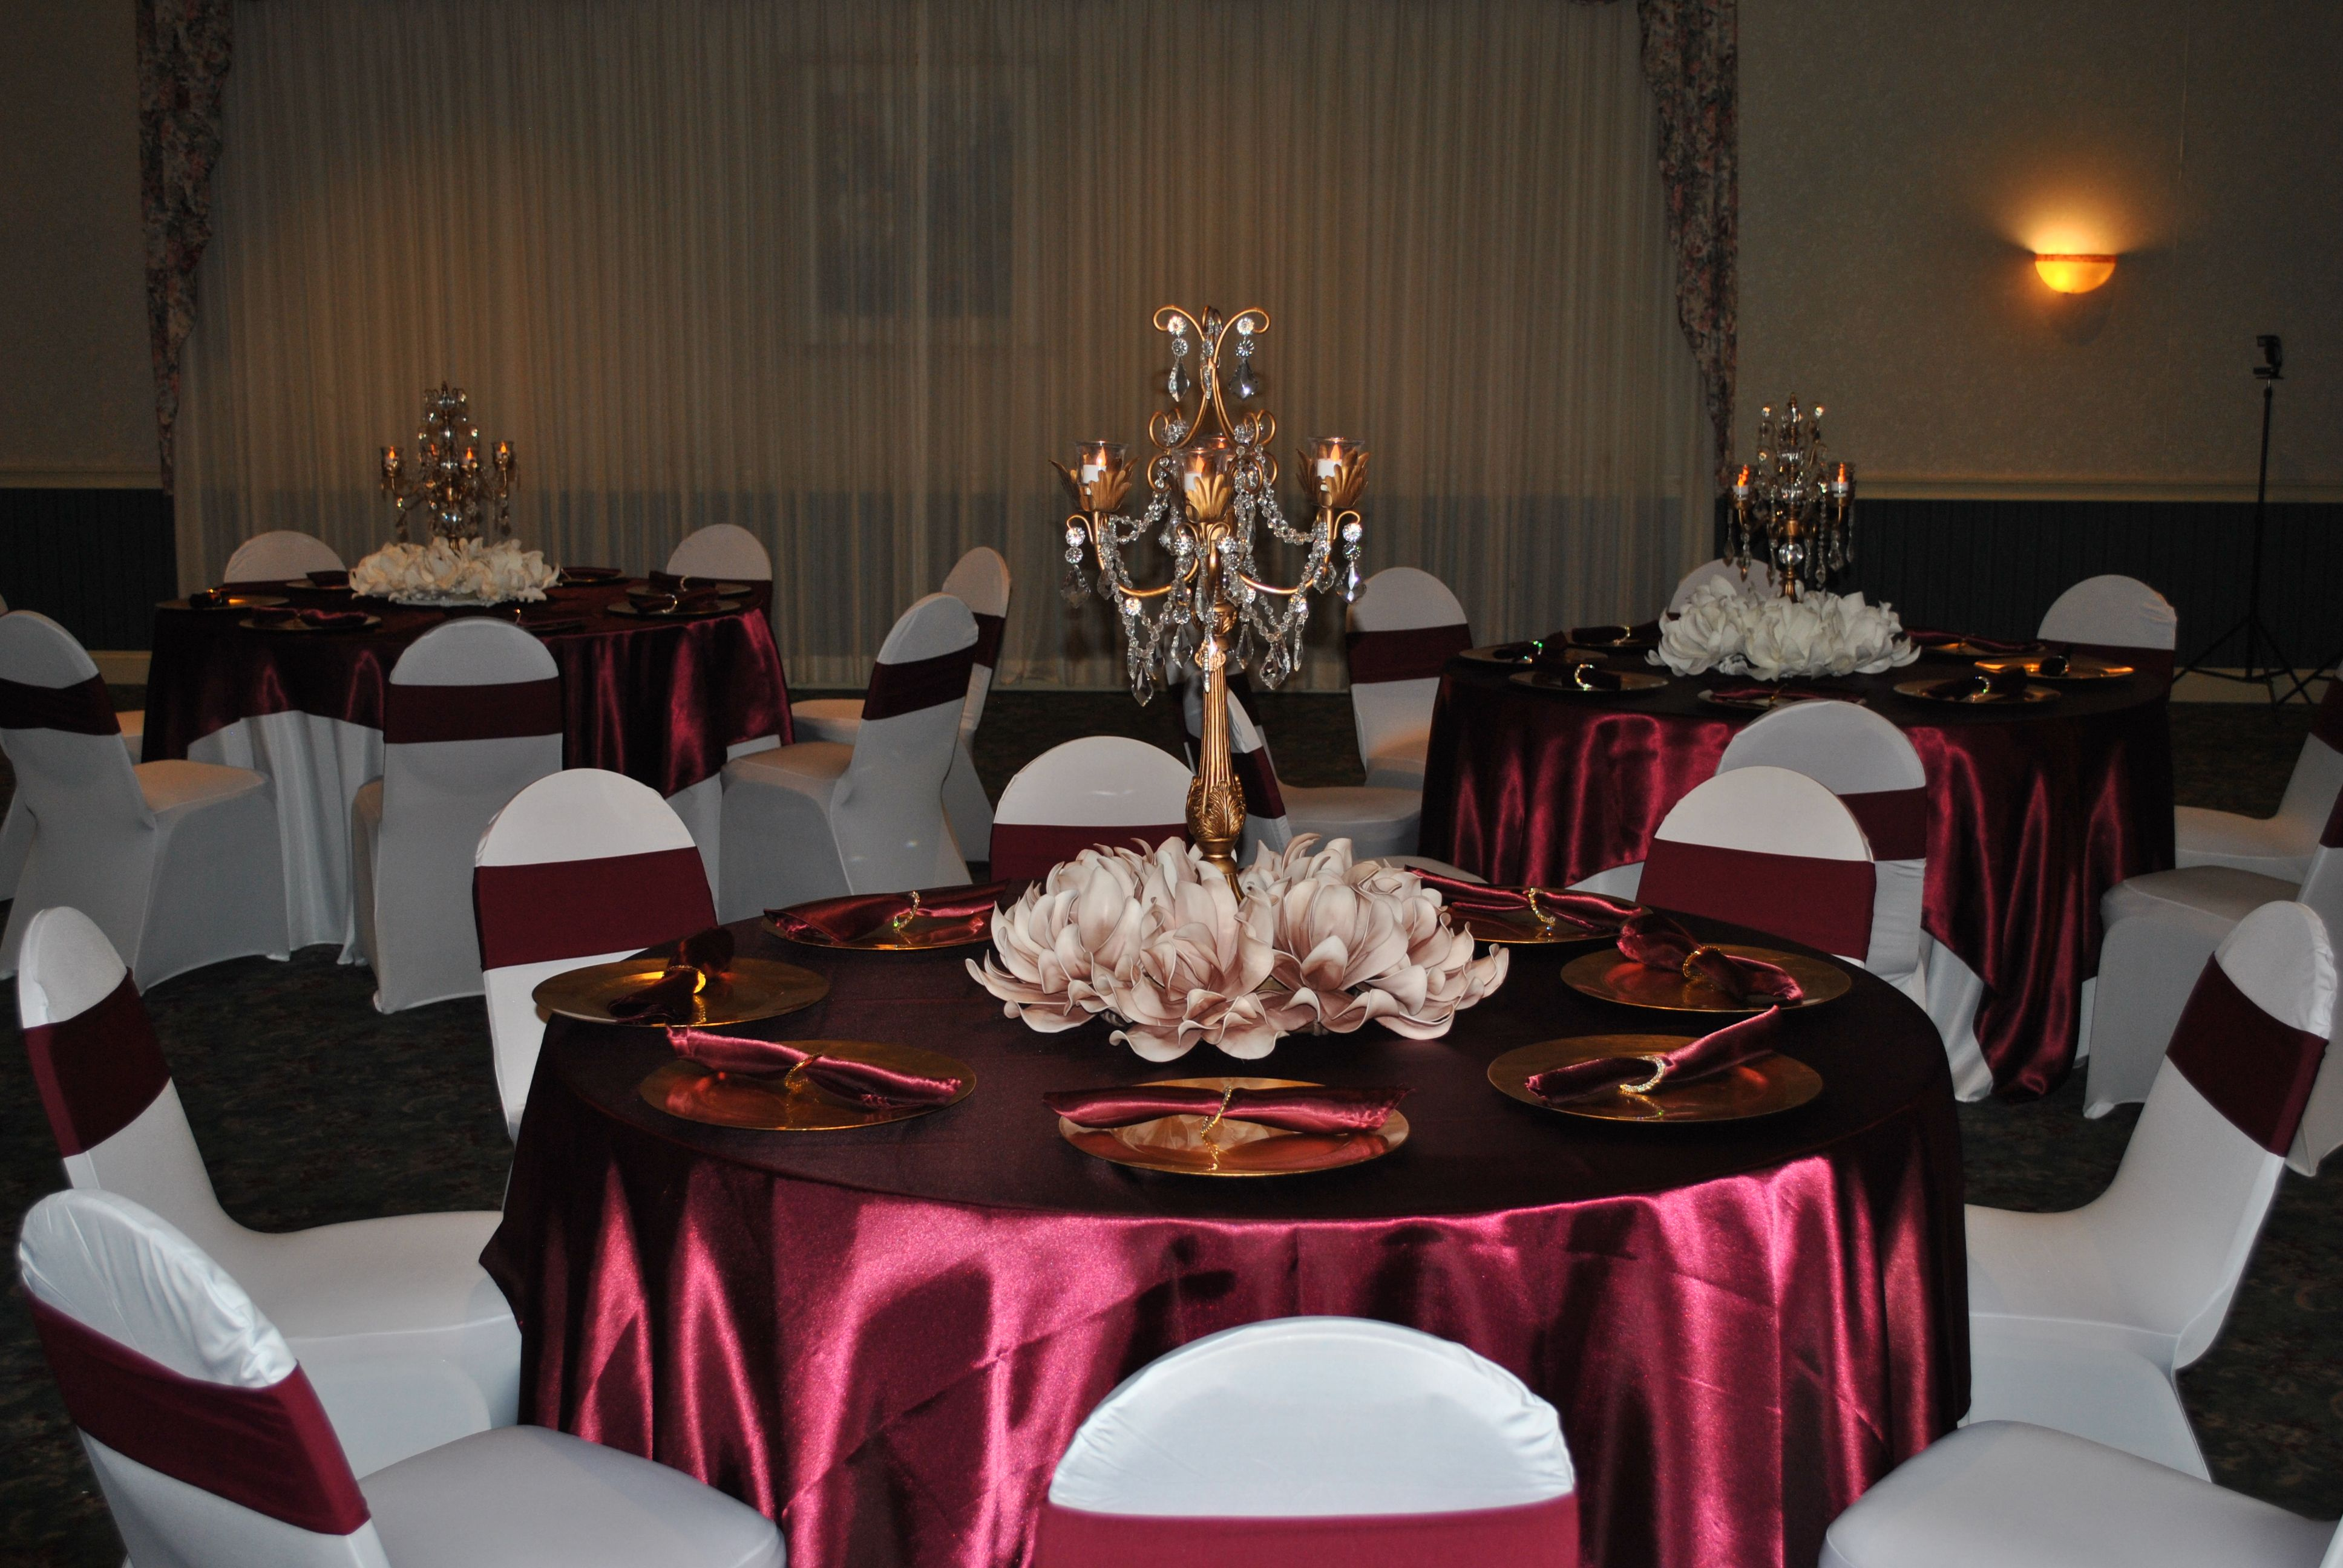 Sweet 16 Marsala/Burgundy and Champagne Table Decor with Gold Candelabra and Floral Blush Centerpieces